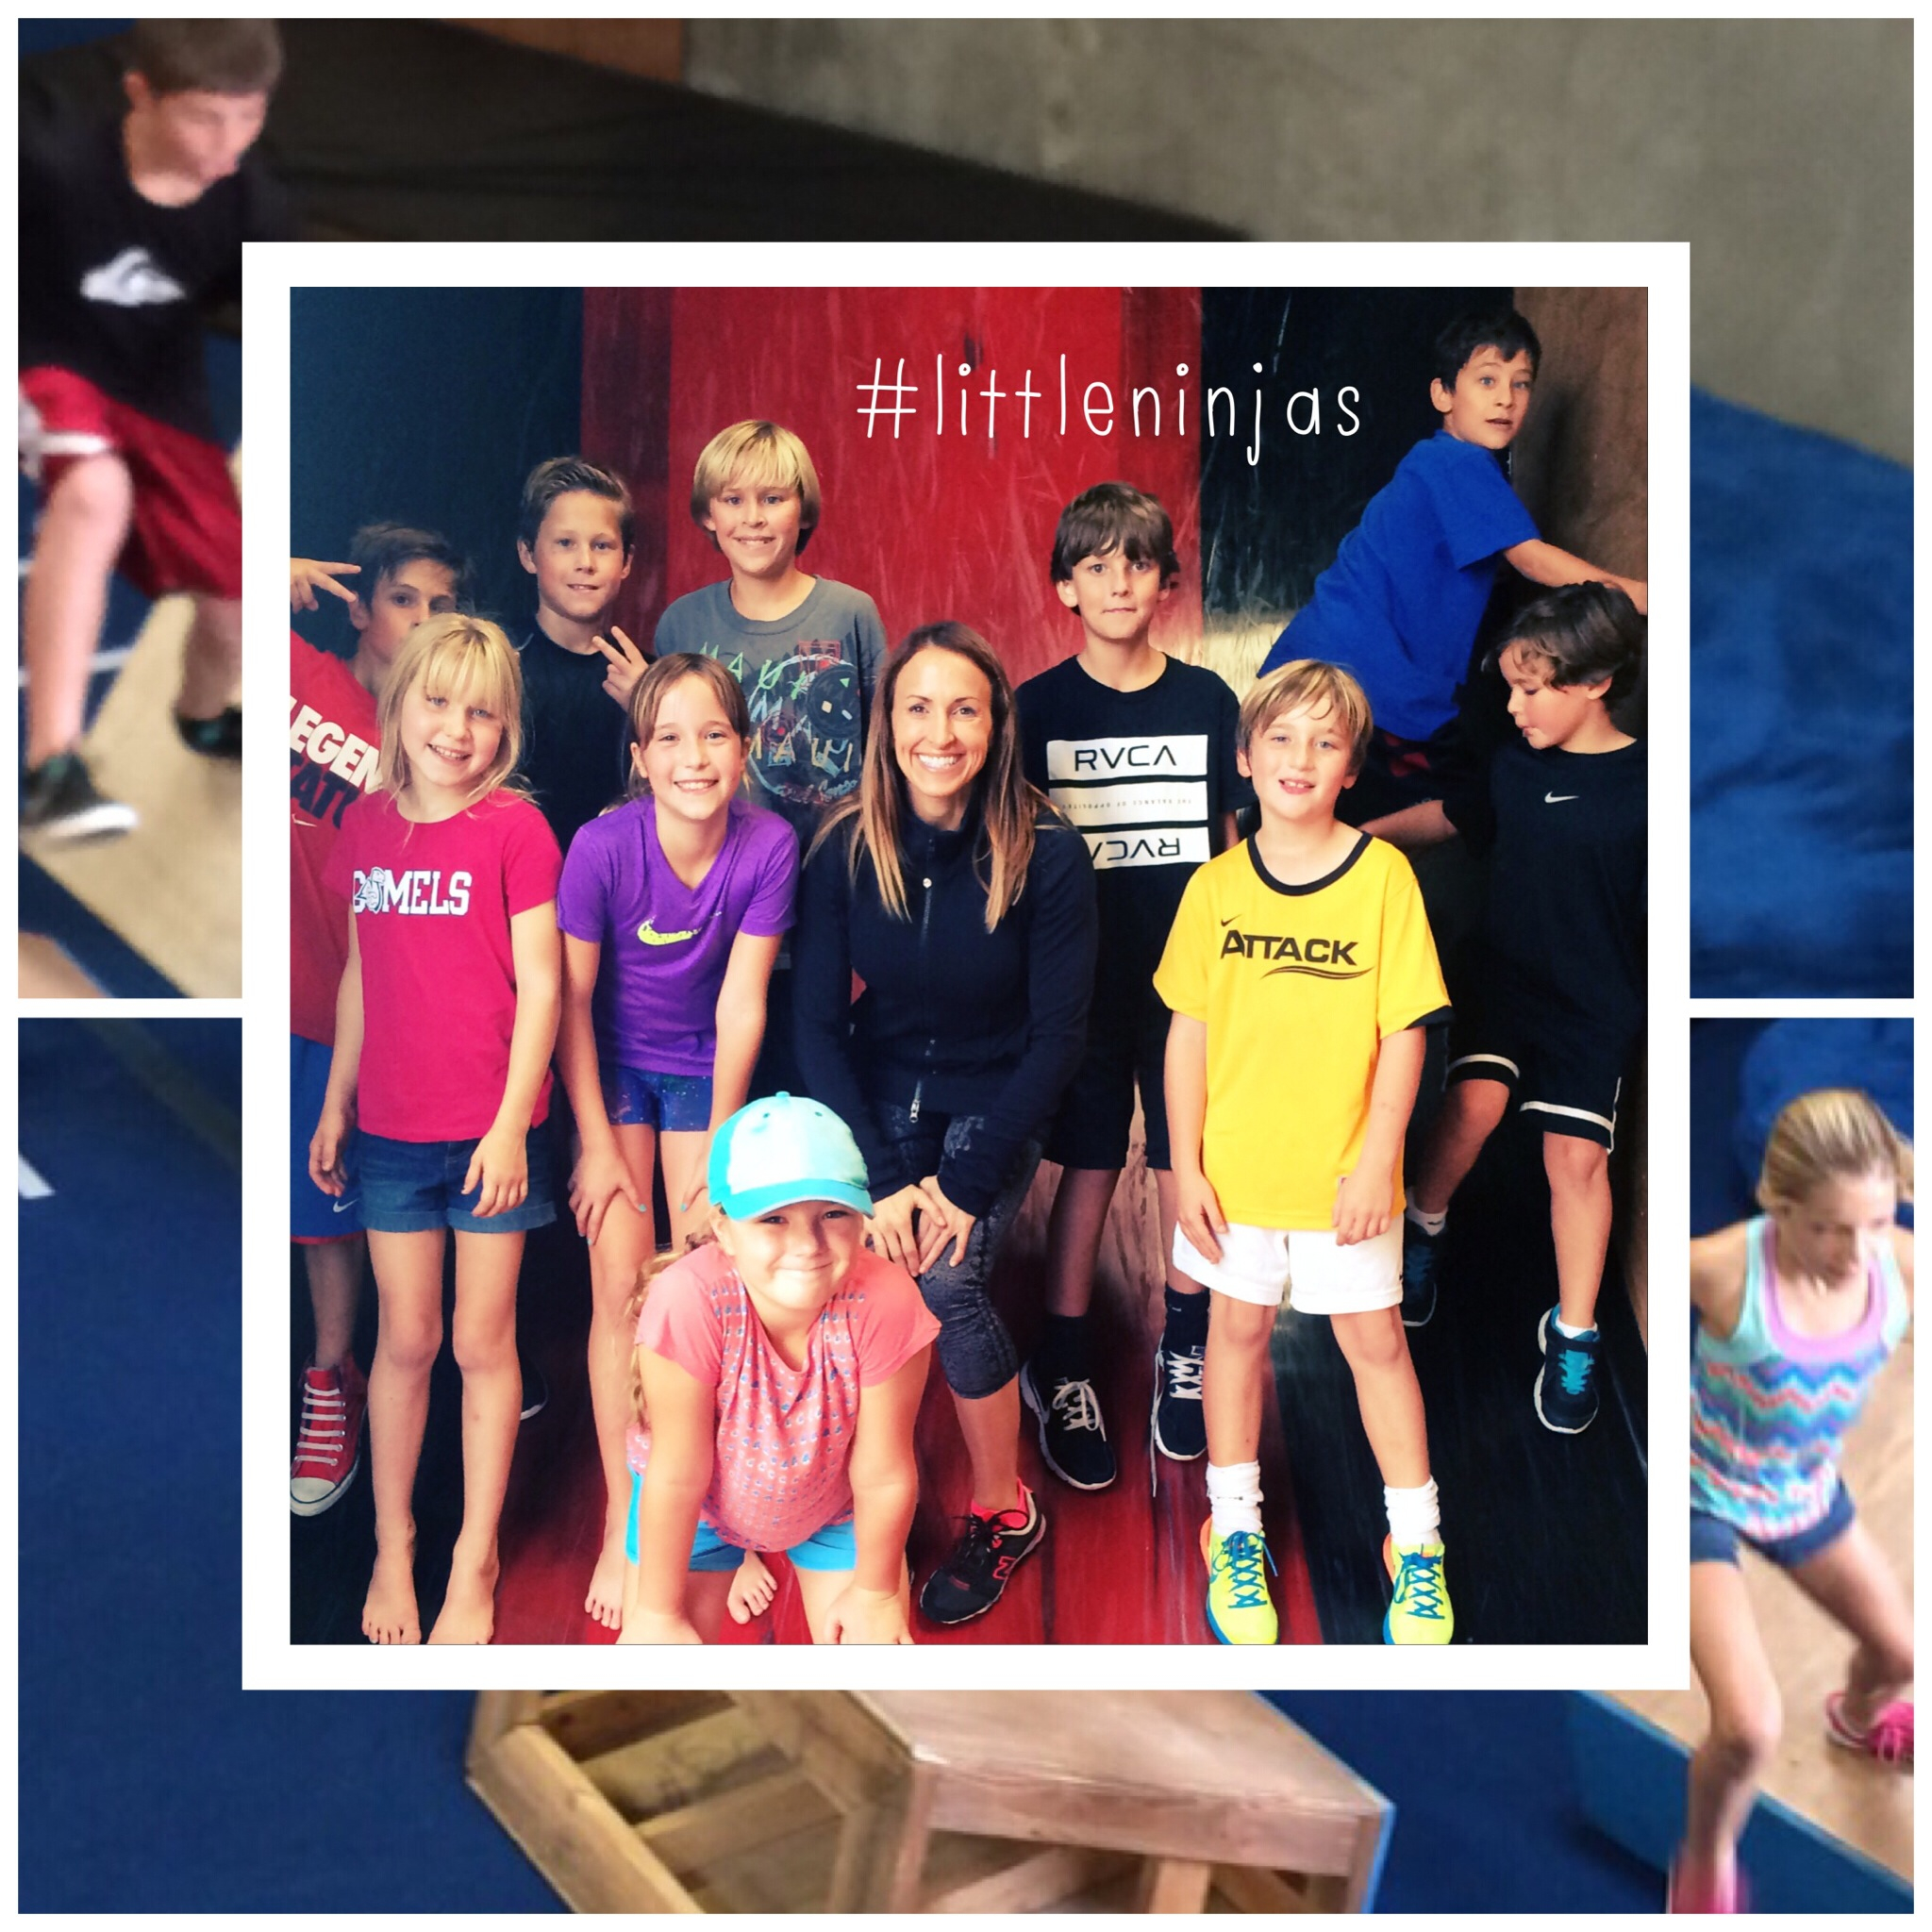 Watch out American Ninja Warrior Season 18. These #littleninjas are training and having fun: running quintuple steps, balancing on wooden beams, rolling on wheels, and attempting the warped wall. Go #littleninjas!